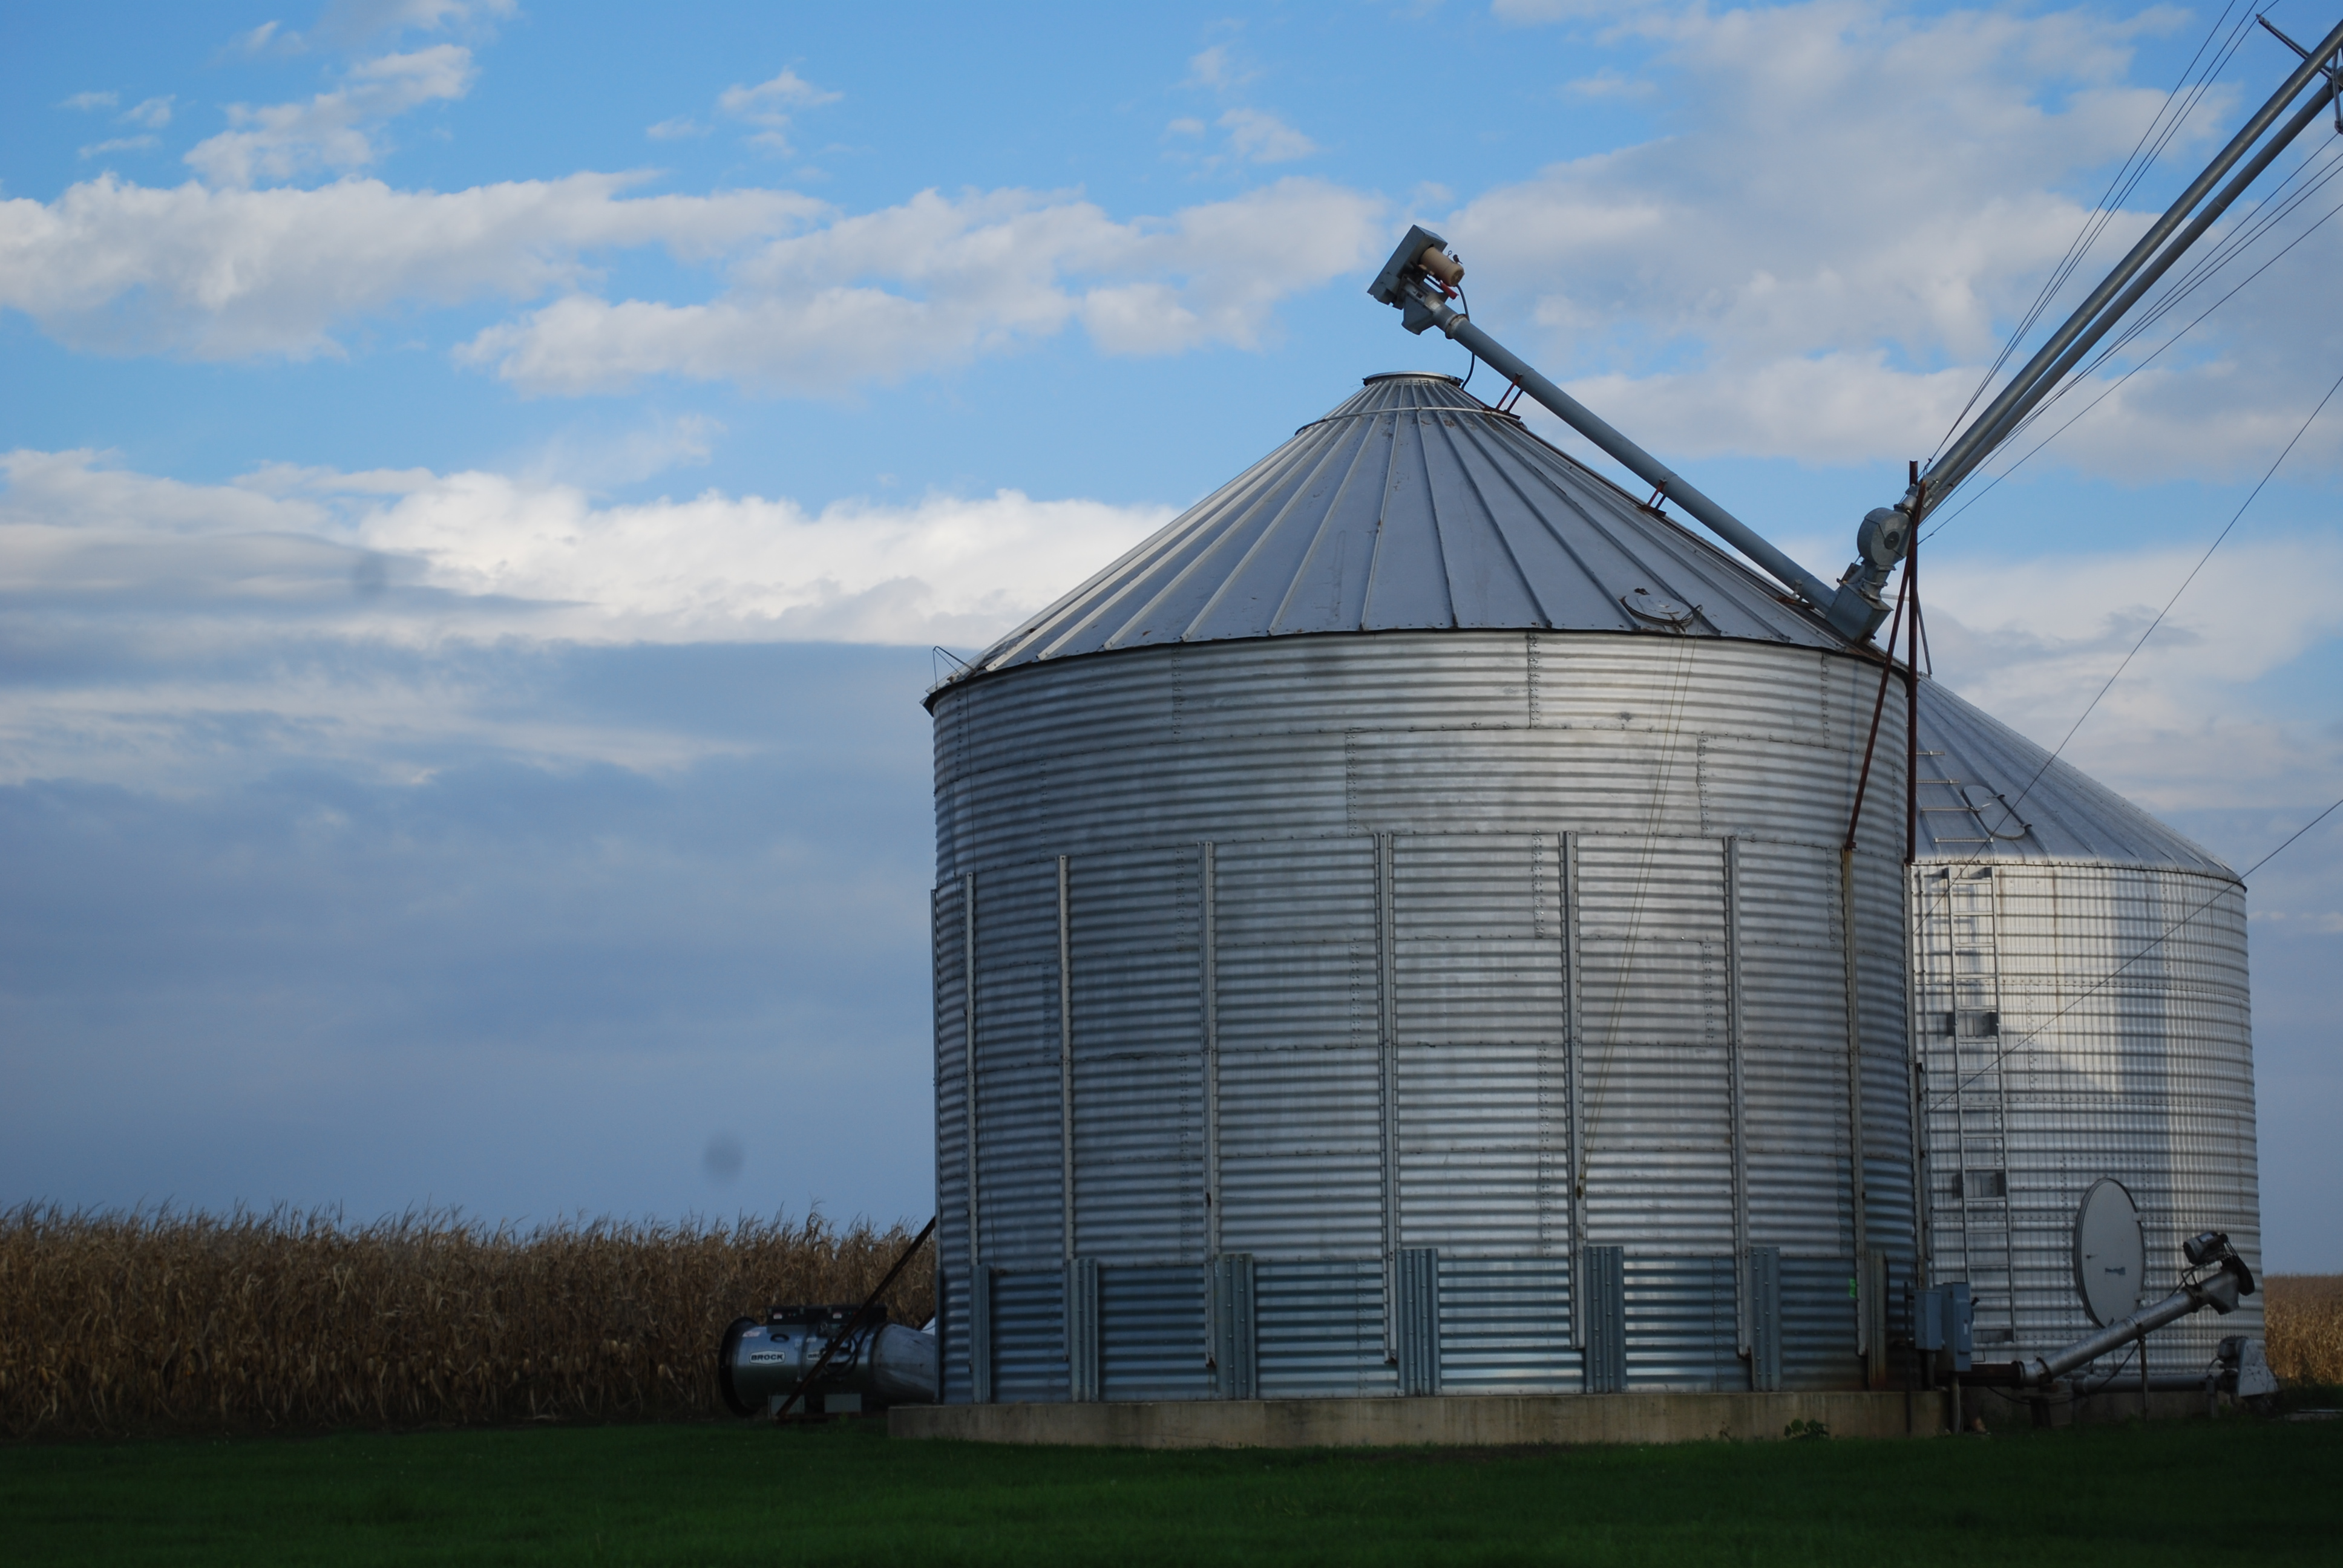 An agronomy blog image showing grain bins during harvest.